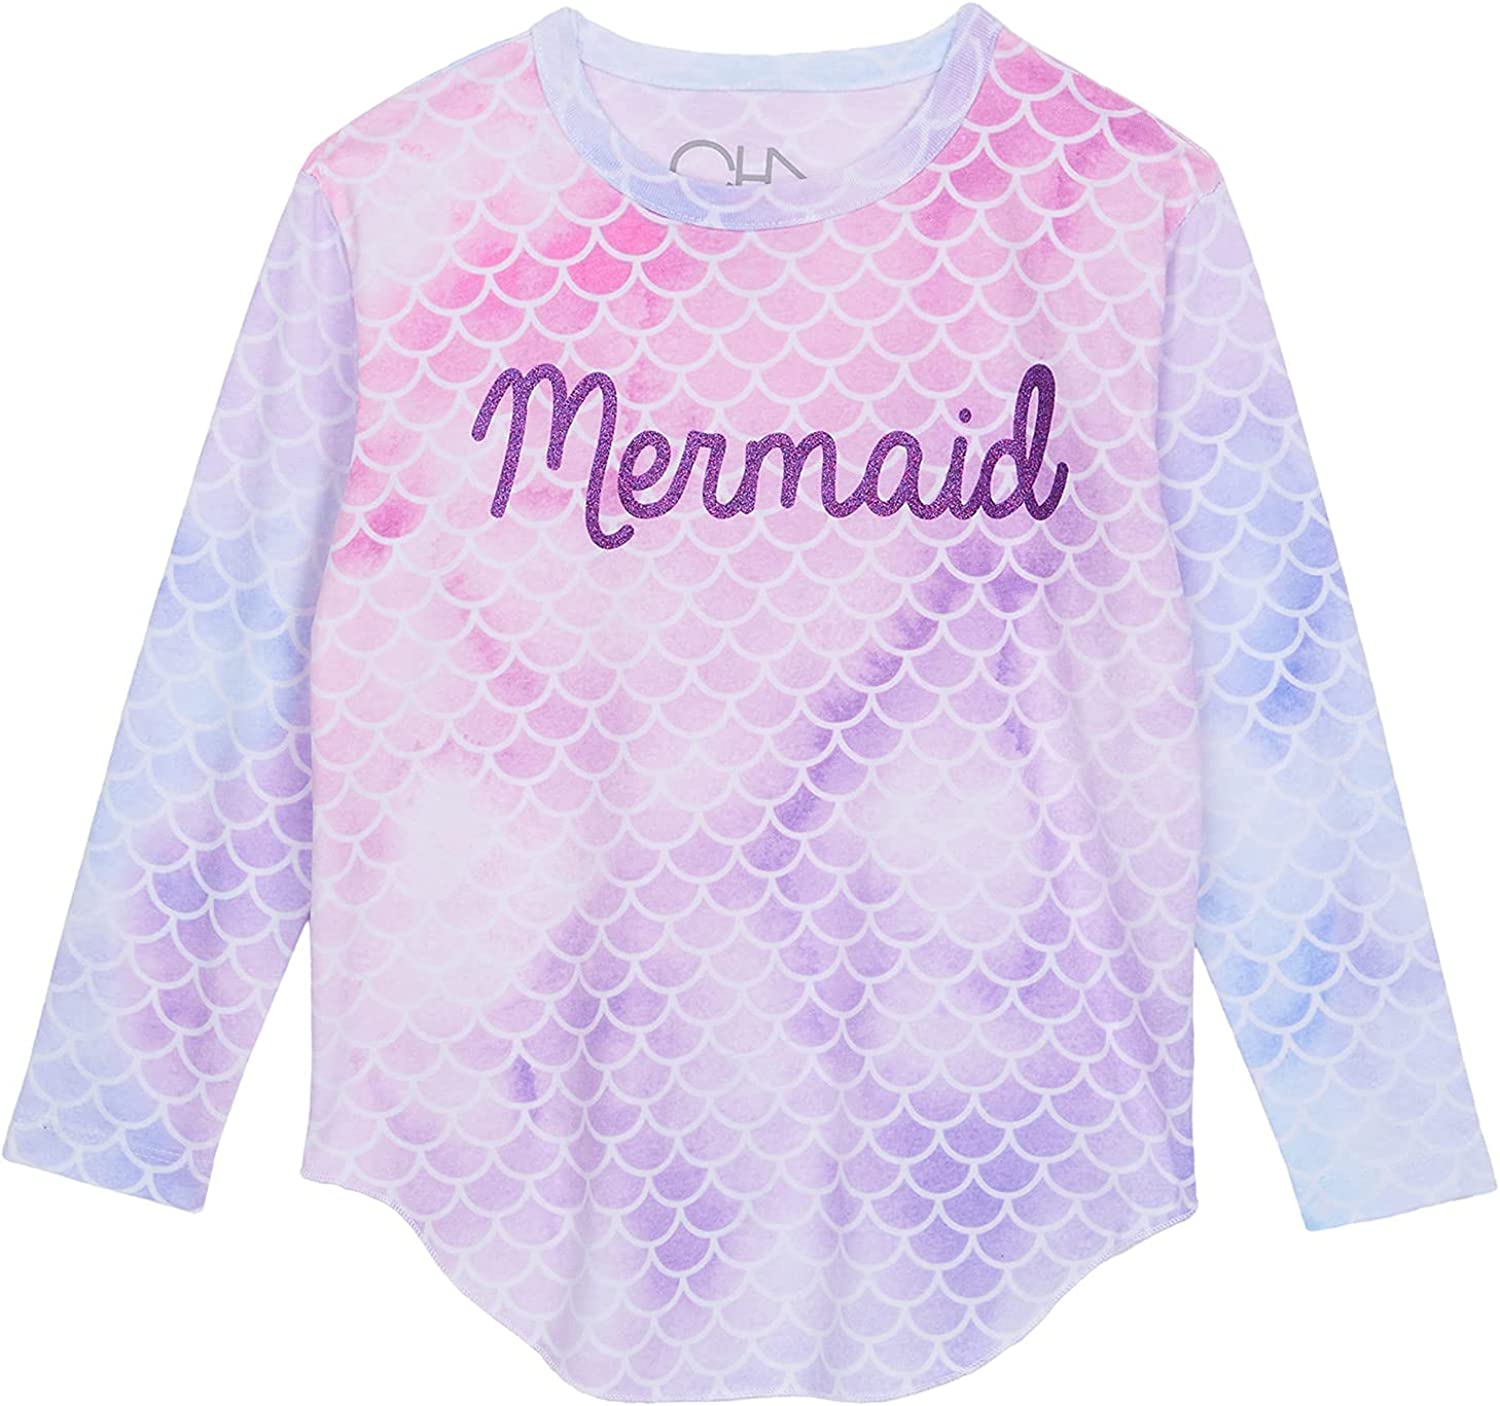 CHASER Girl's Recycled Vintage Jersey Long Sleeve Shirttail Tee (Toddler/Little Kids) Surfside Tie-Dye 6 Little Kids